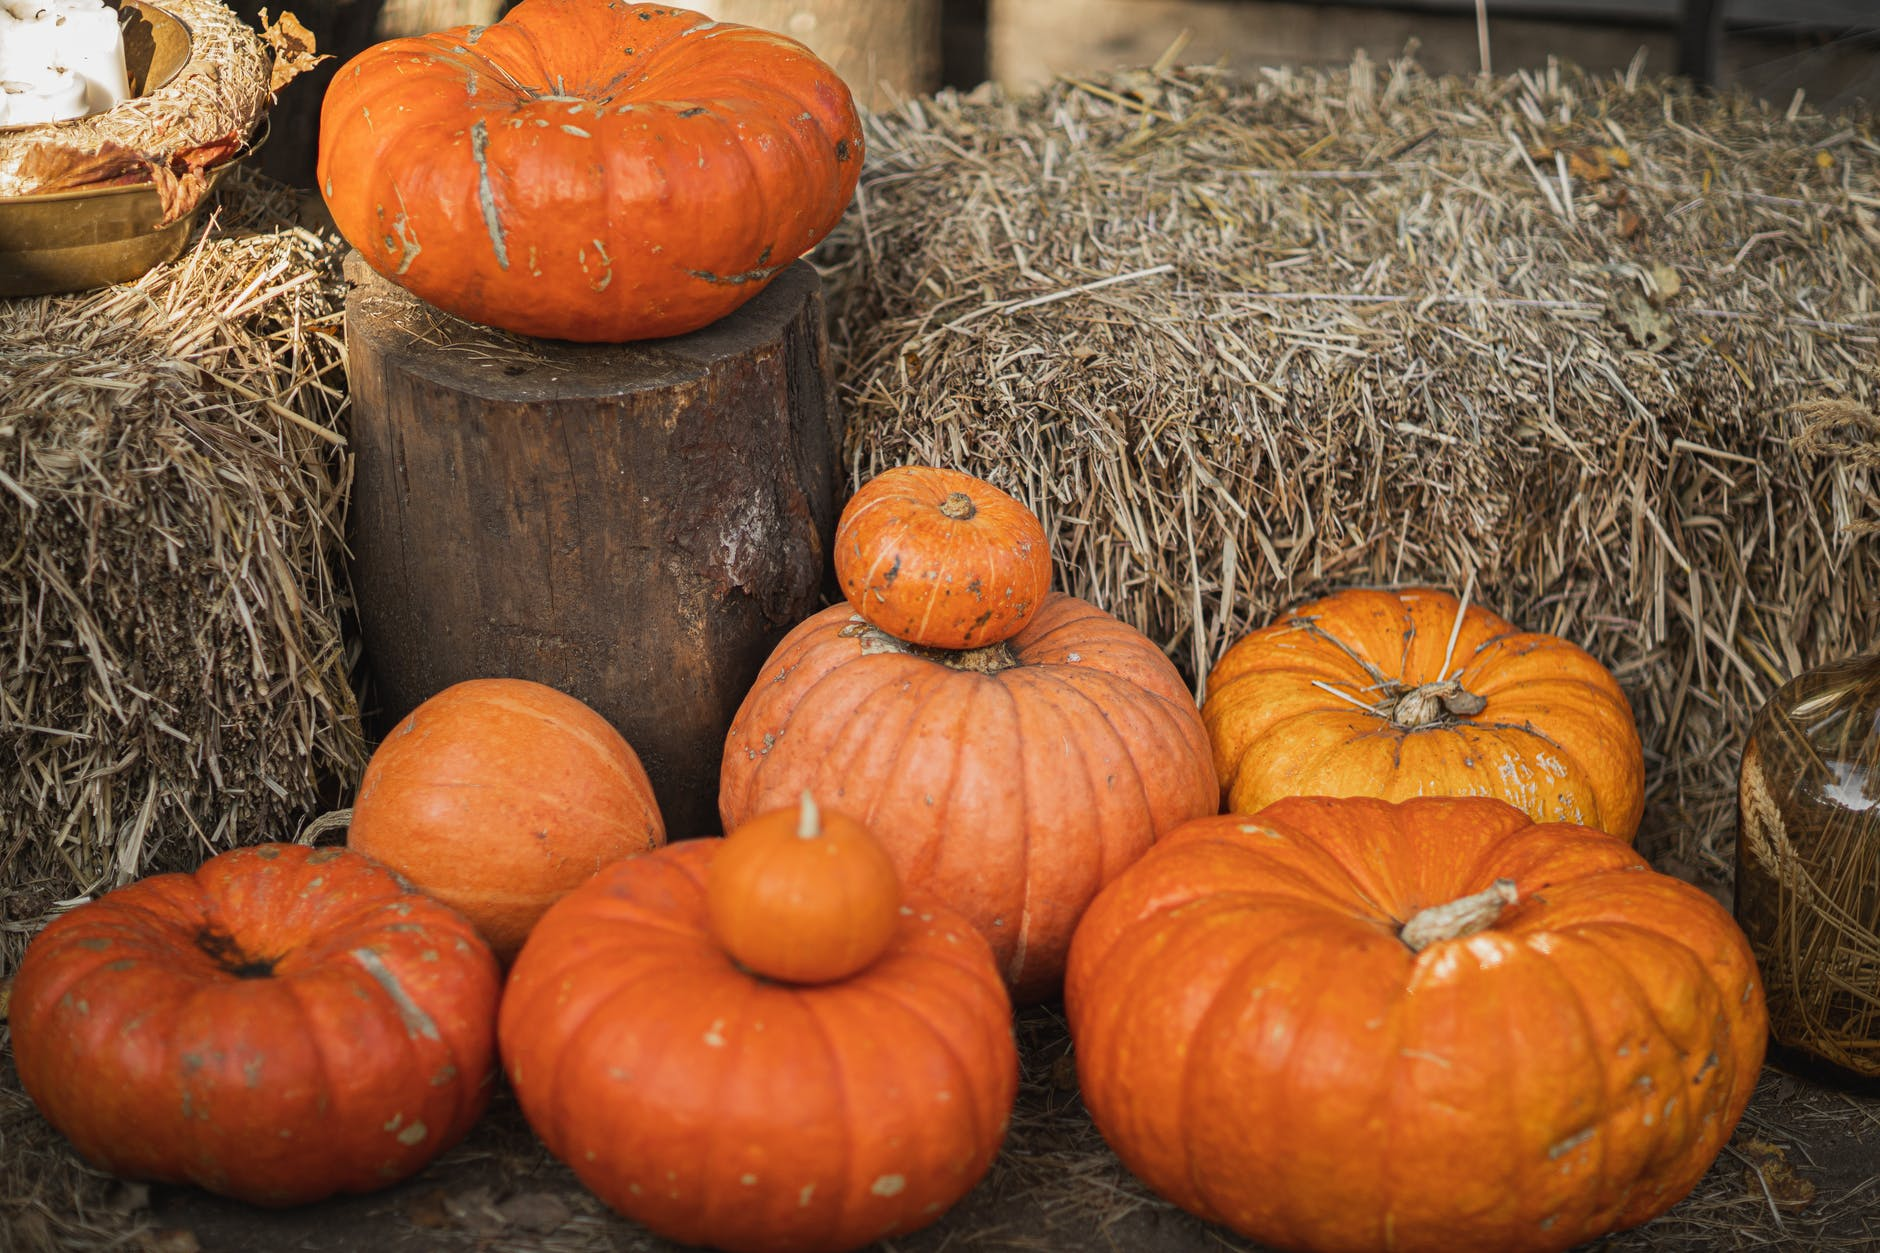 orange pumpkins on brown hay